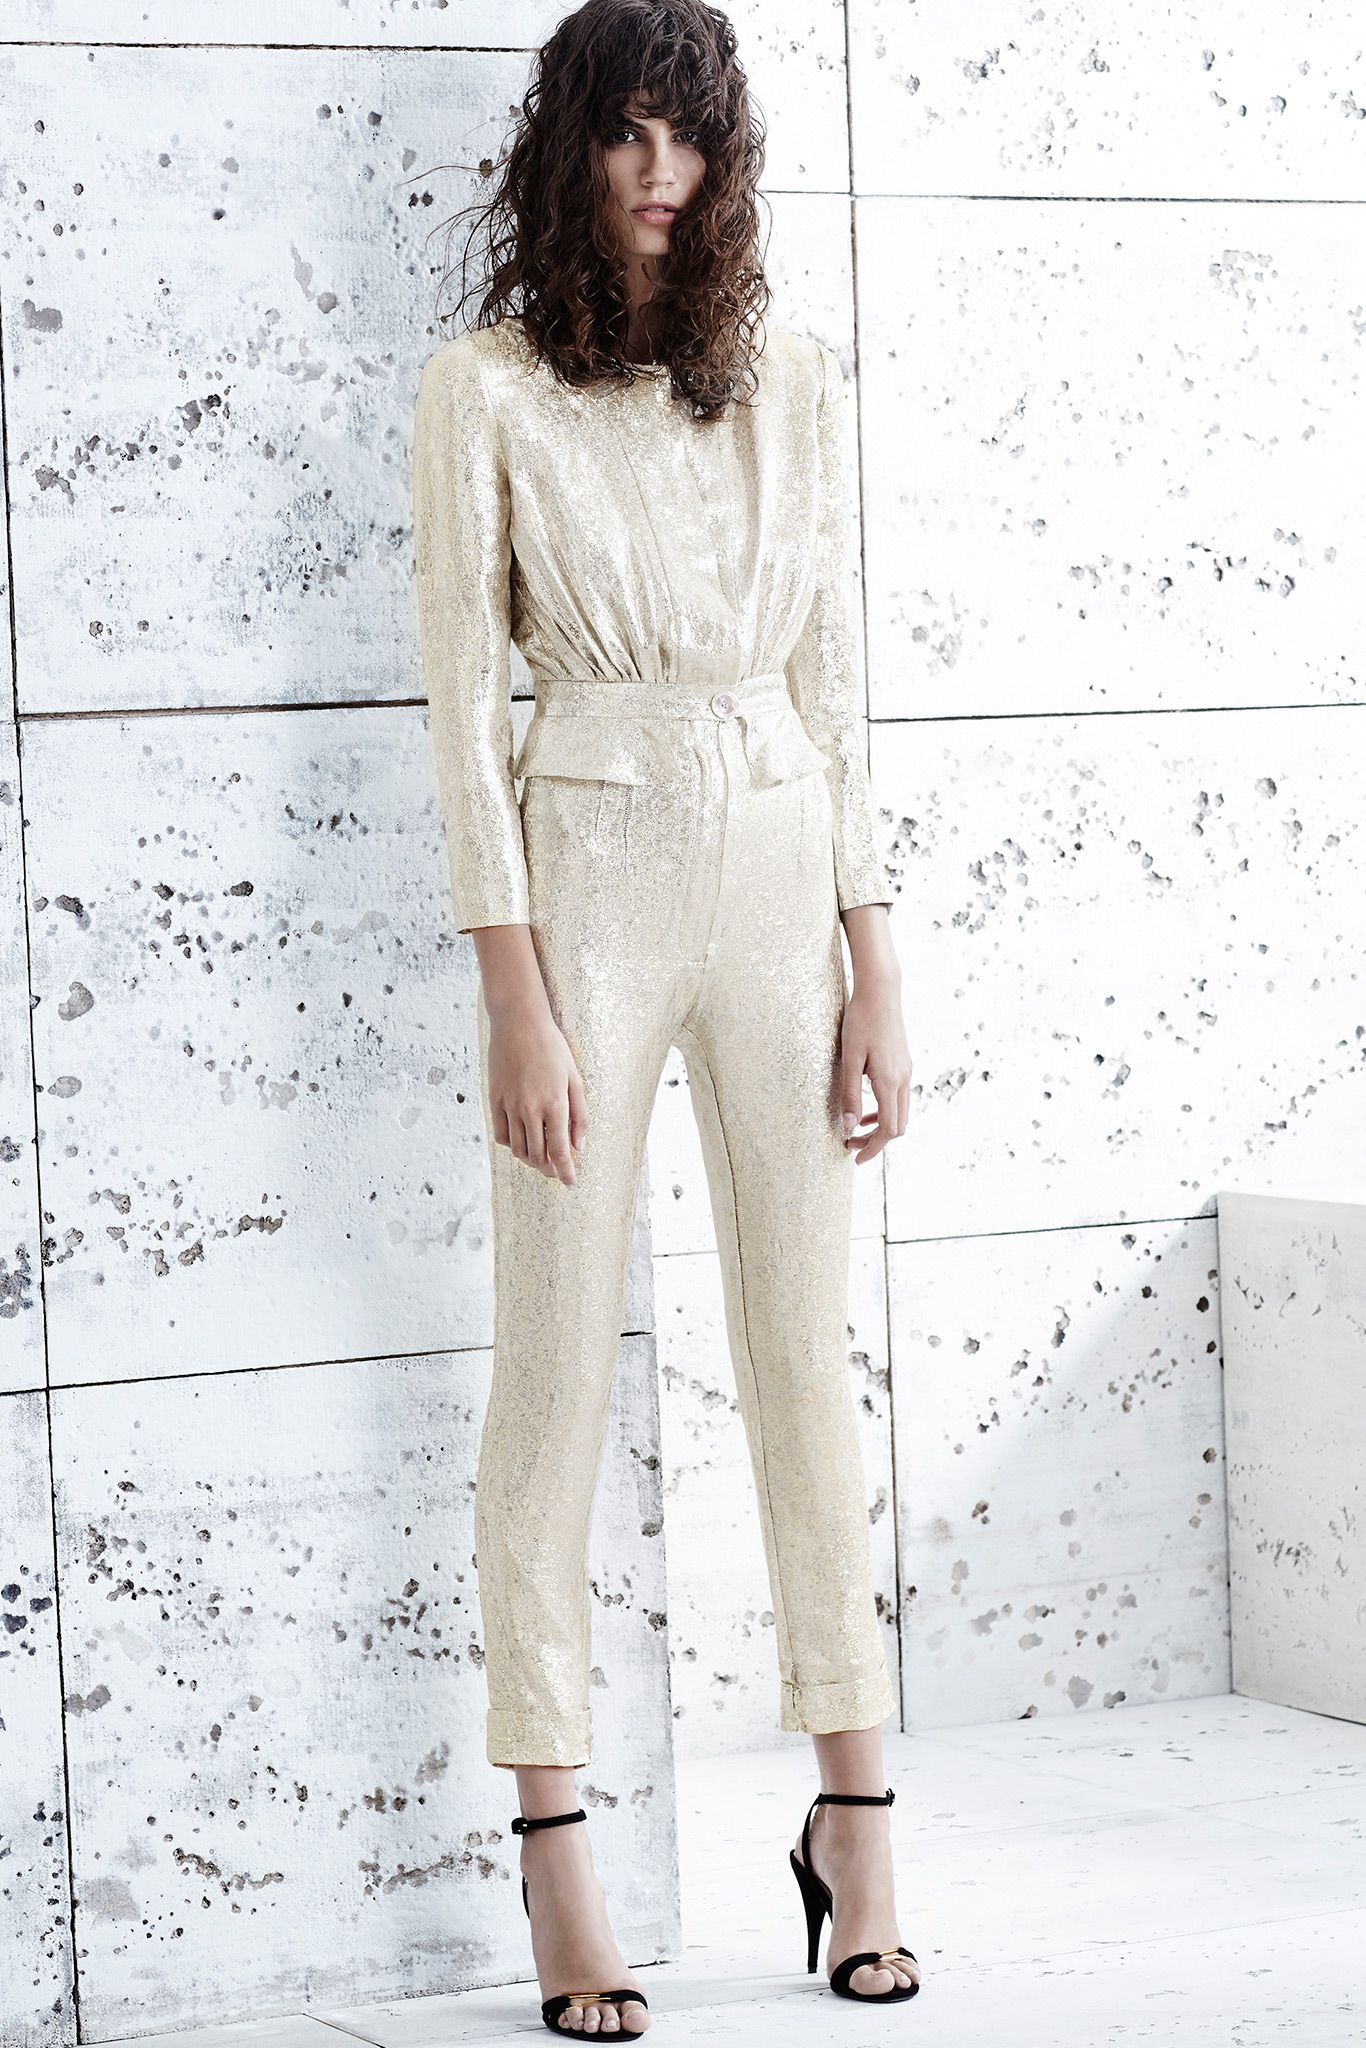 Pedro del Hierro Madrid Spring 2015 Ready-to-Wear - Style.com